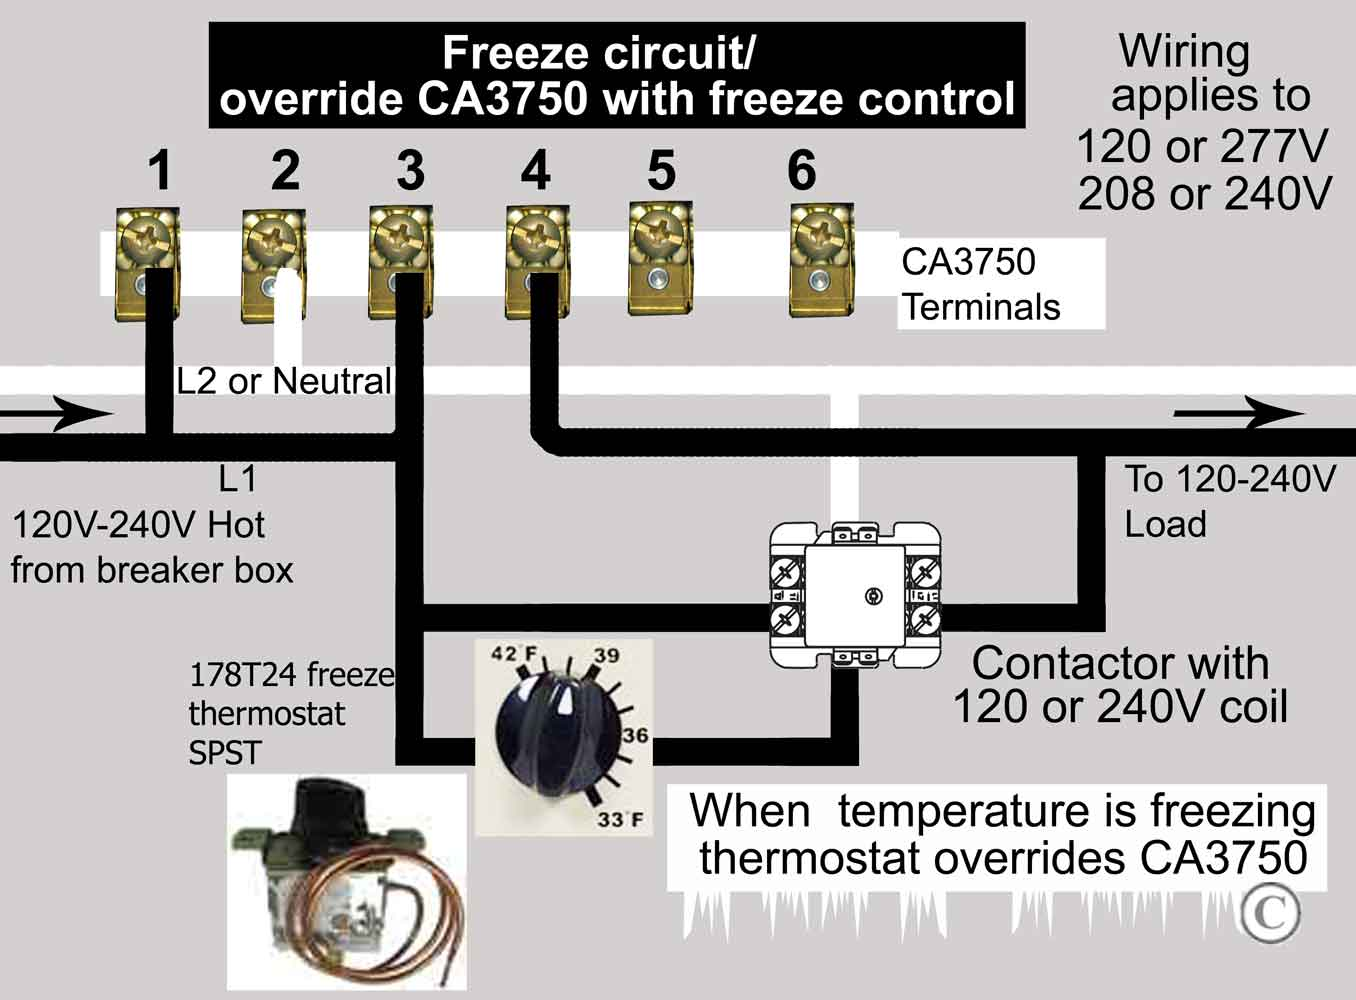 CA3750 control SPDT 120V w freeze2 how to wire ca3750 z wave contactor zwave basics  at panicattacktreatment.co